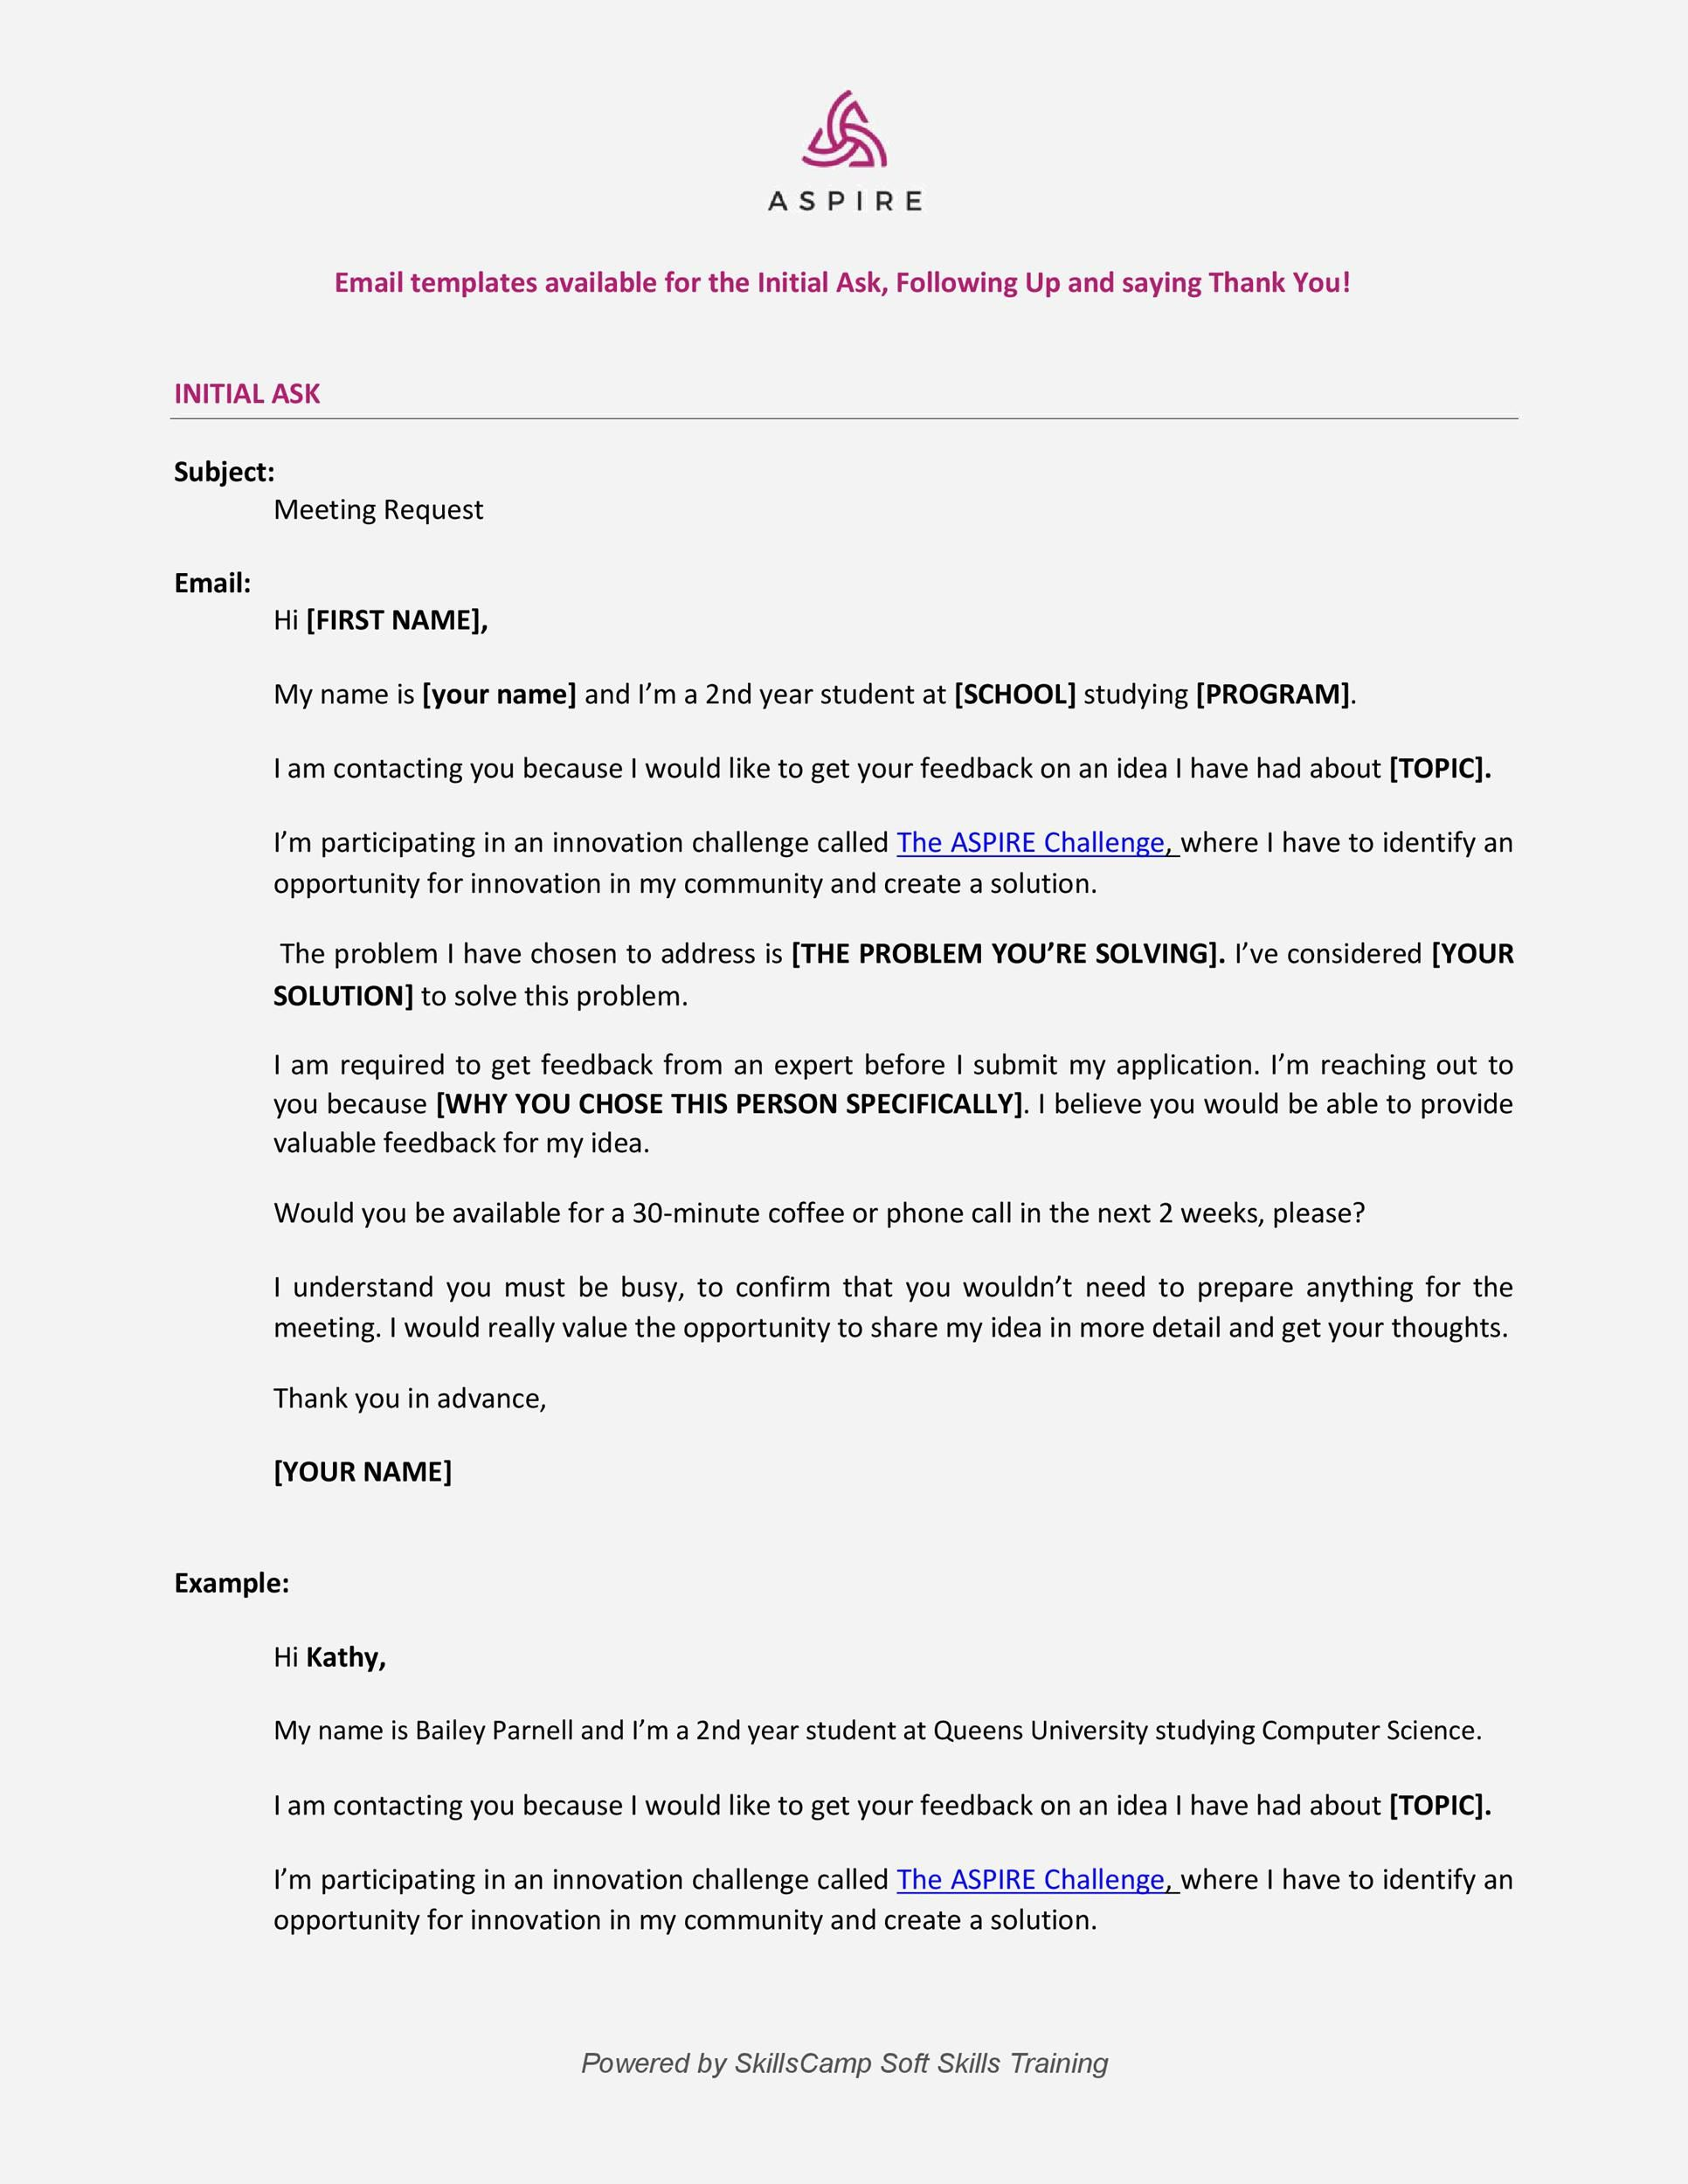 003 Archaicawful Follow Up Email Template Request Highest Quality Full